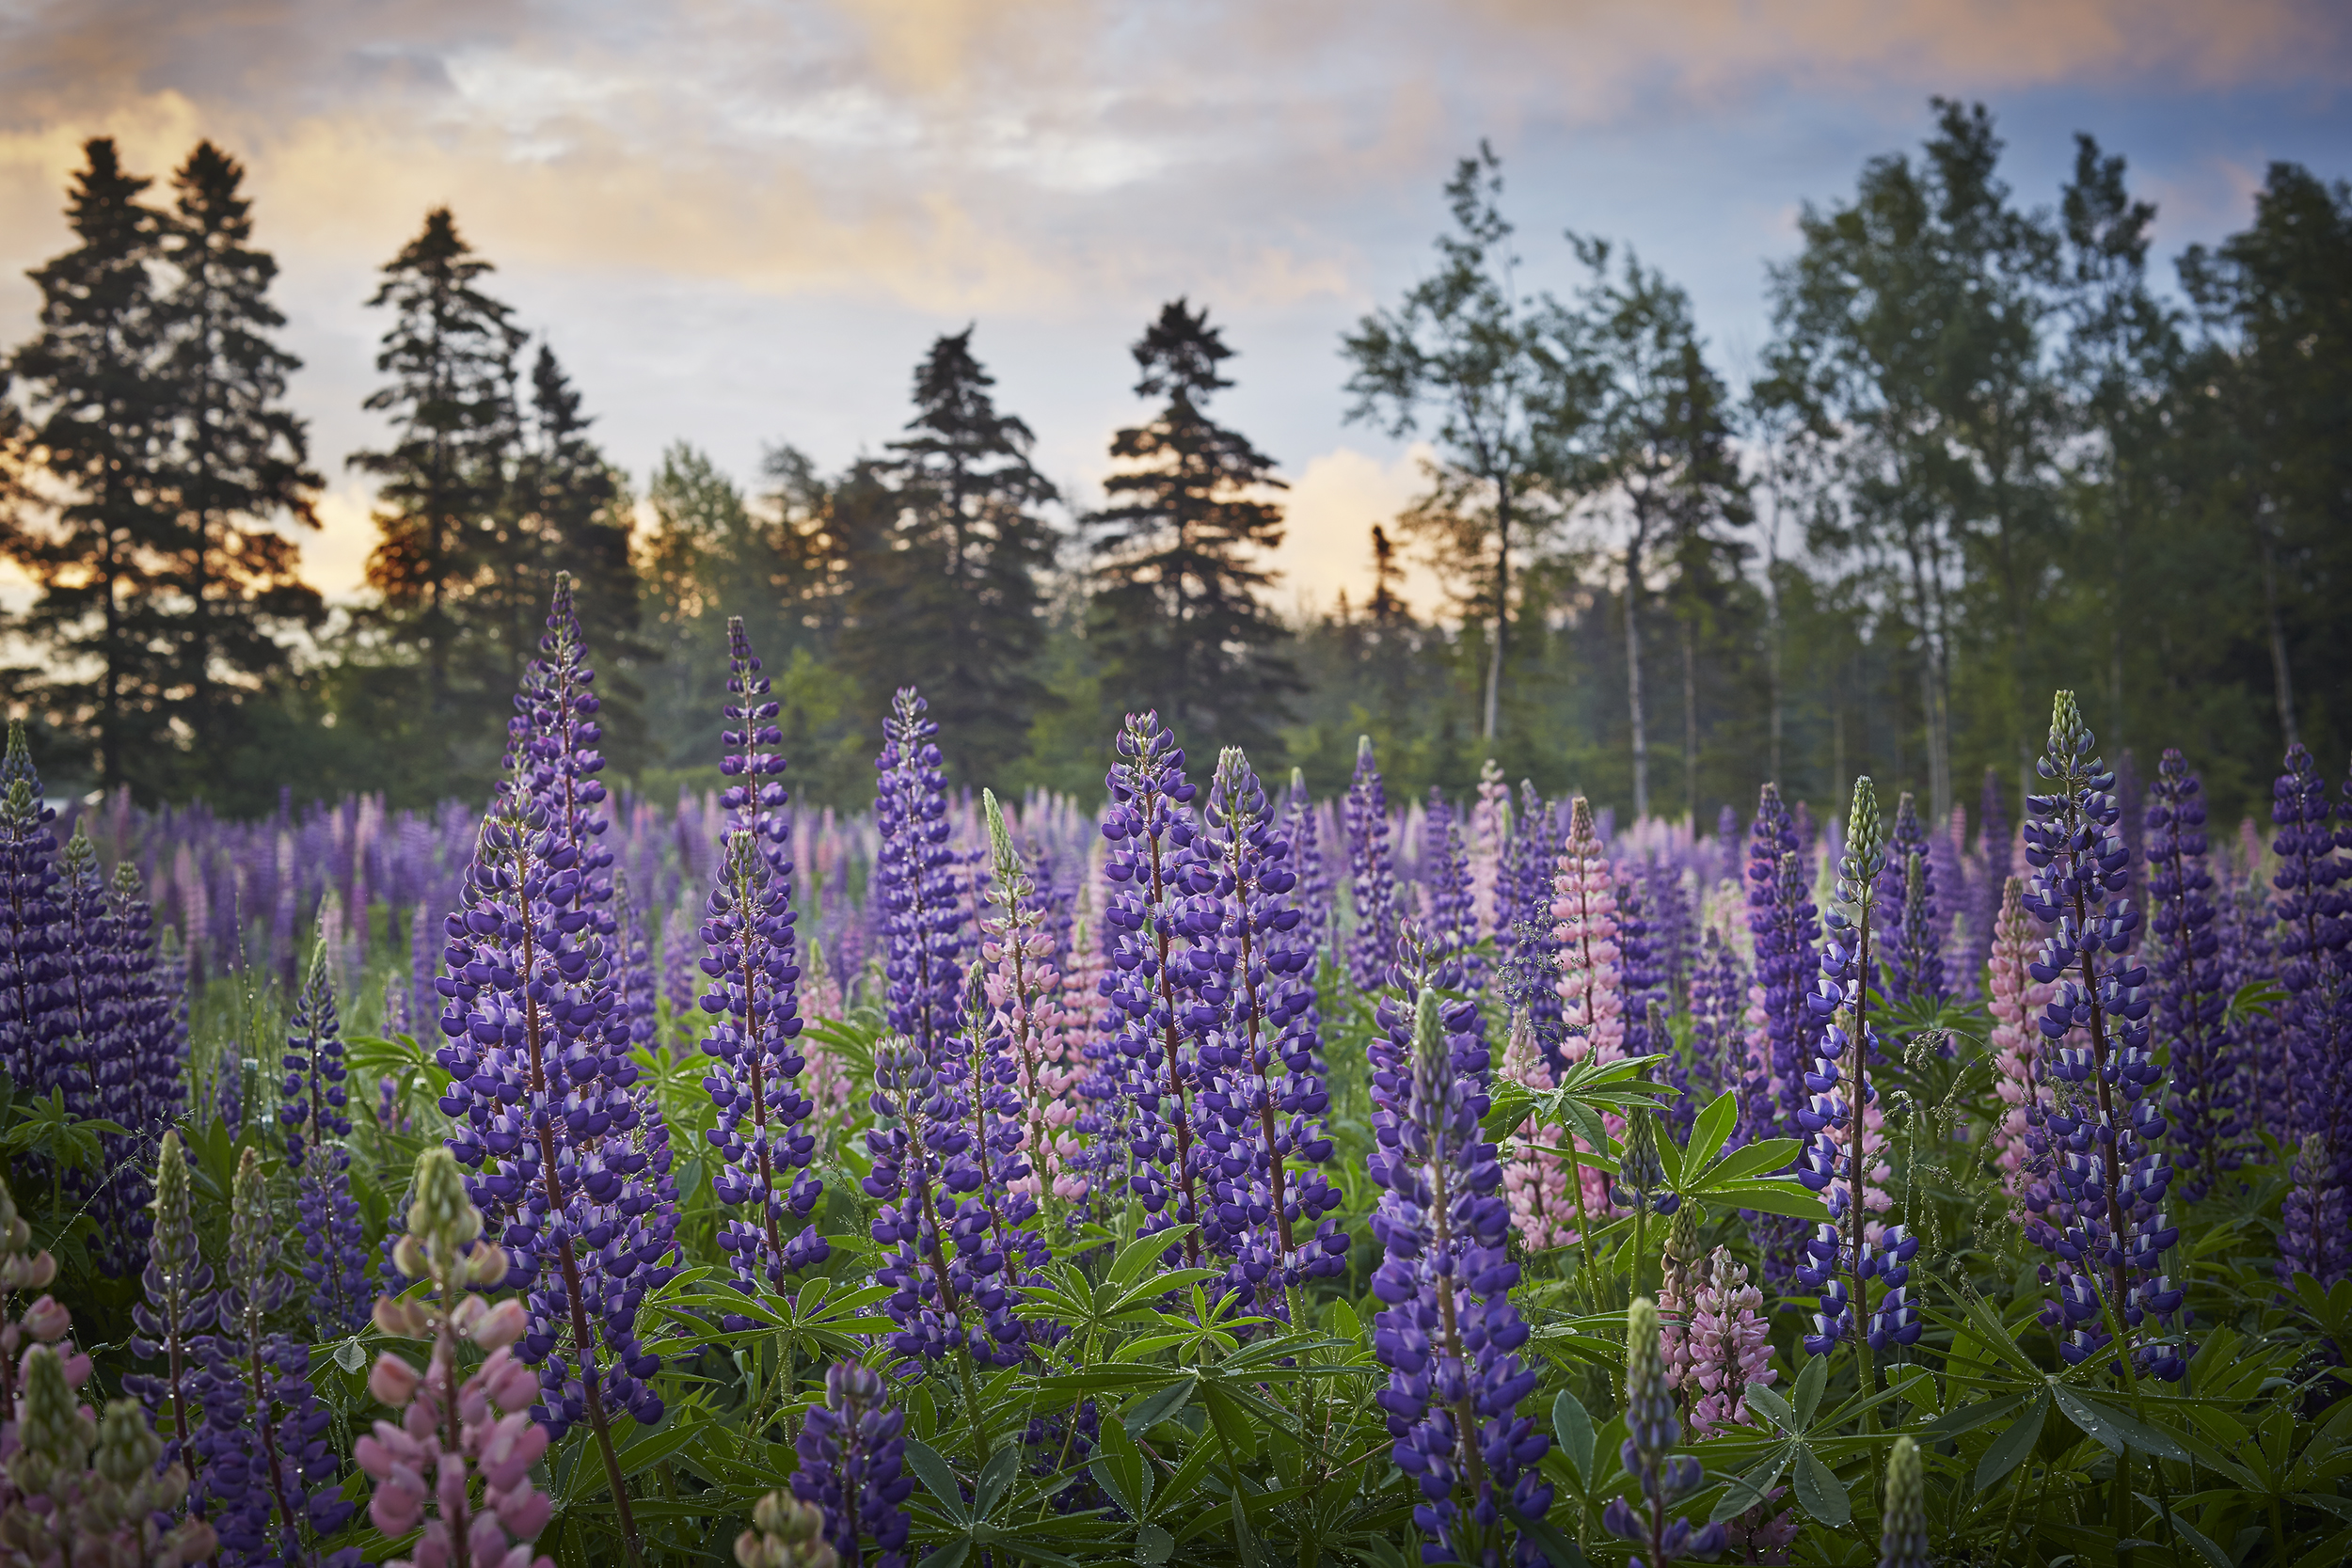 Lupin Meadow at Jardin de Métis